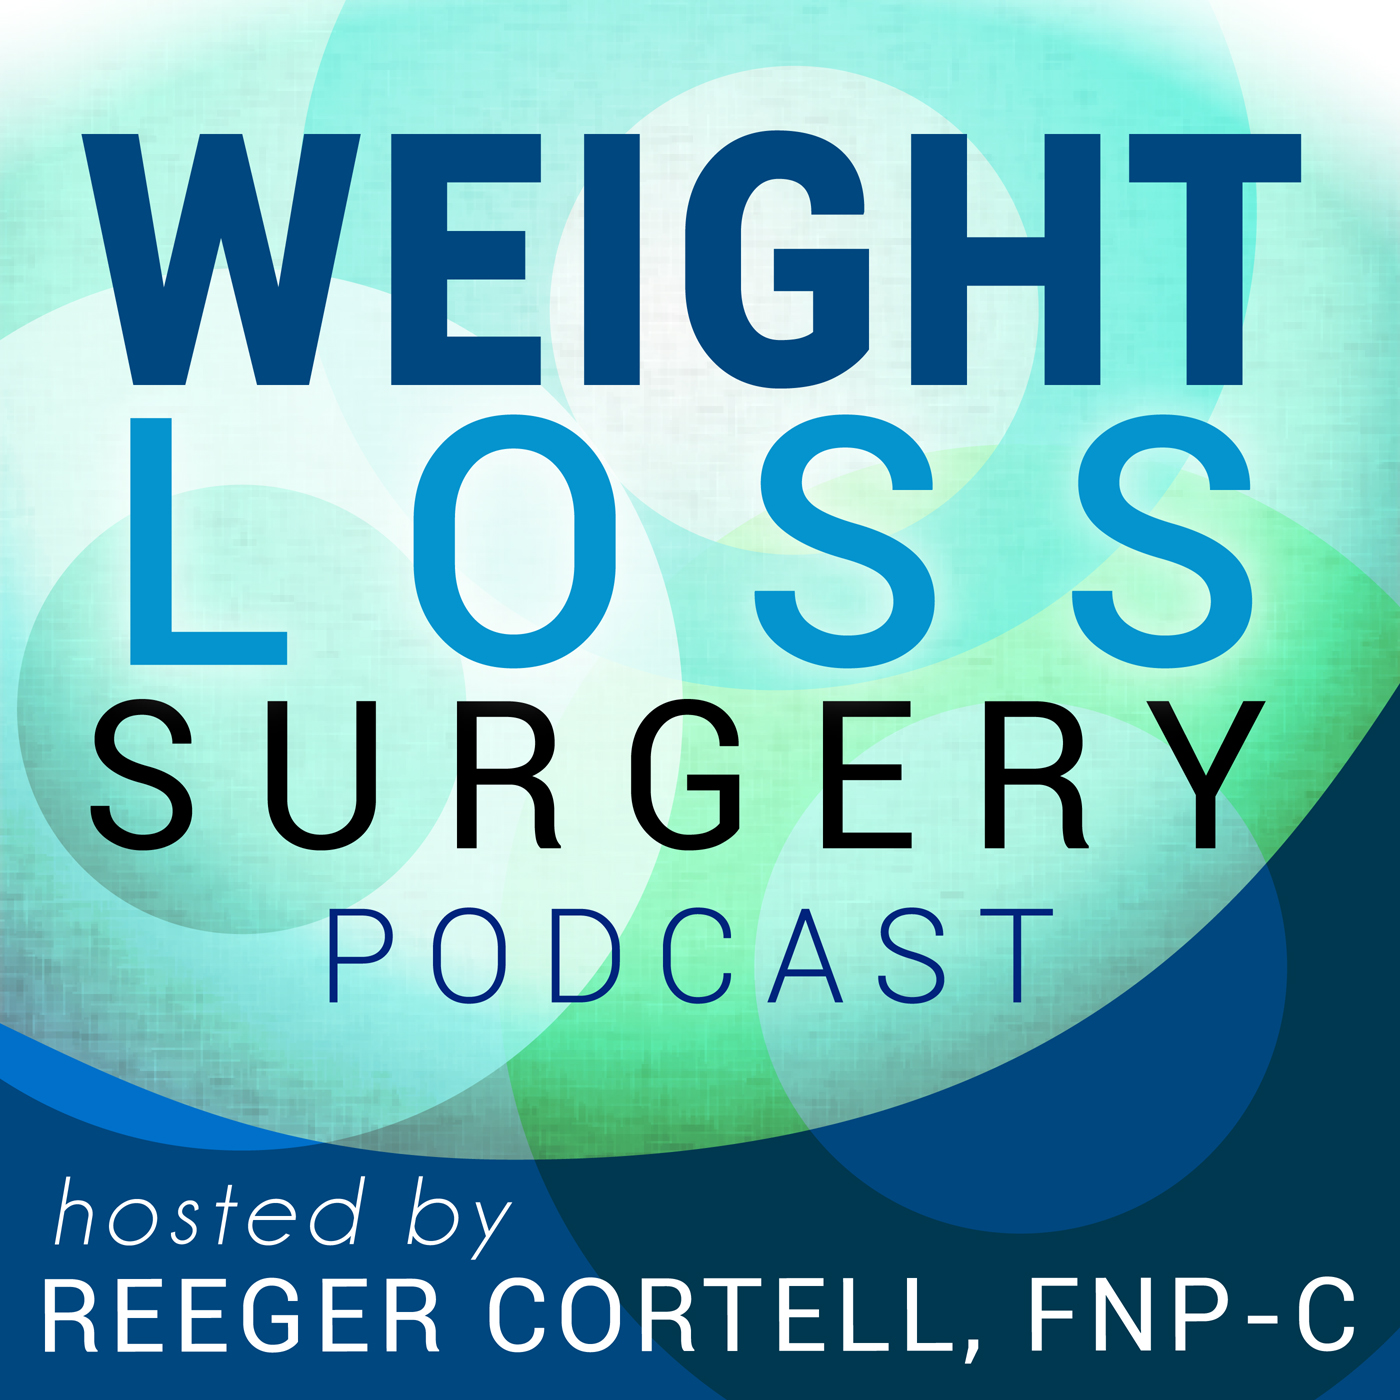 Weight Loss Surgery Podcast Bariatric Lap Band Rygb Gastric